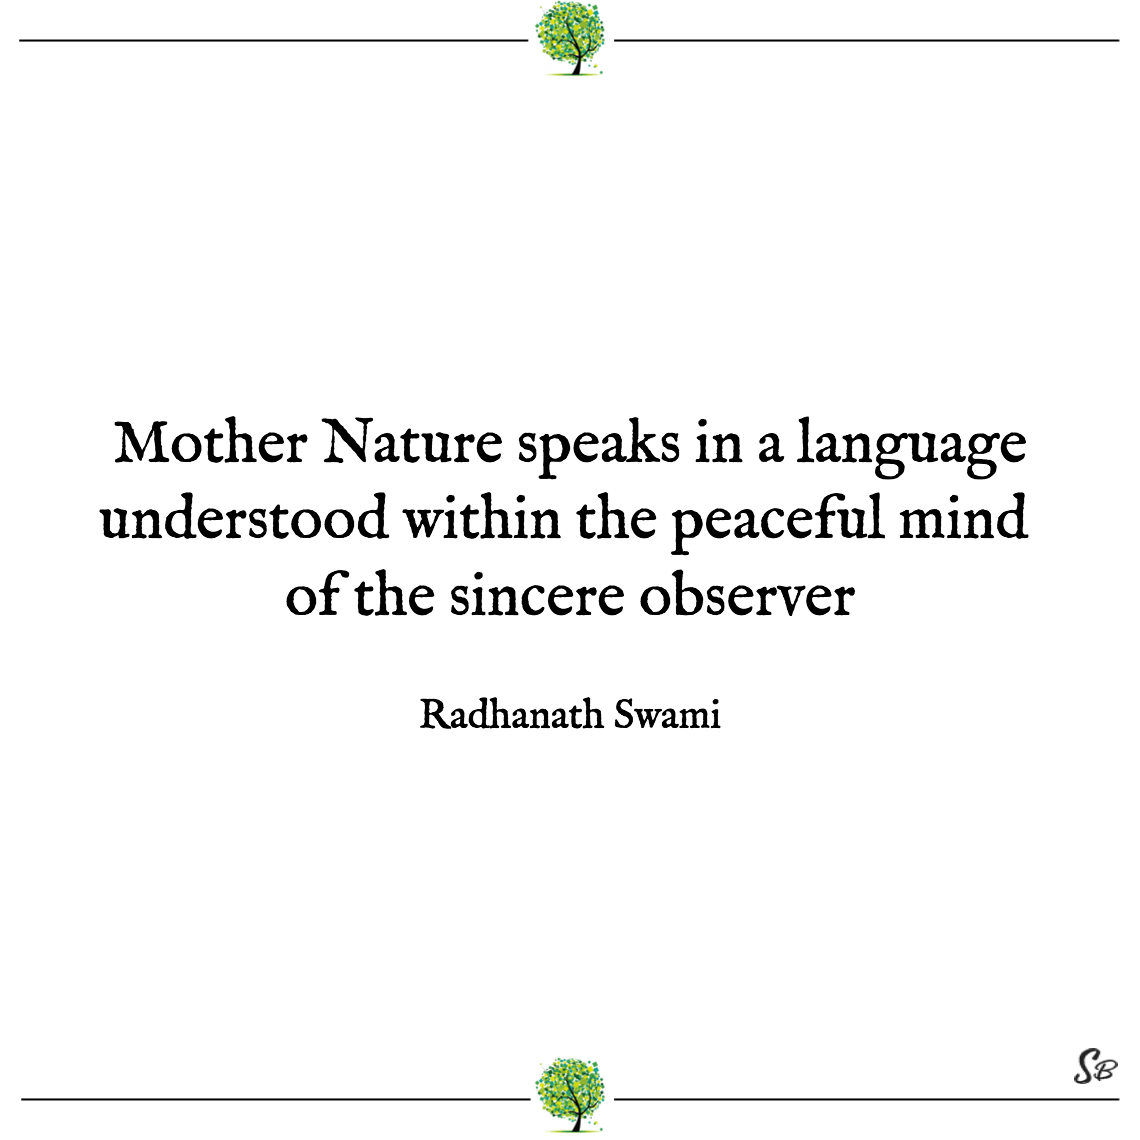 Mother nature speaks in a language understood within the peaceful mind radhanath swami